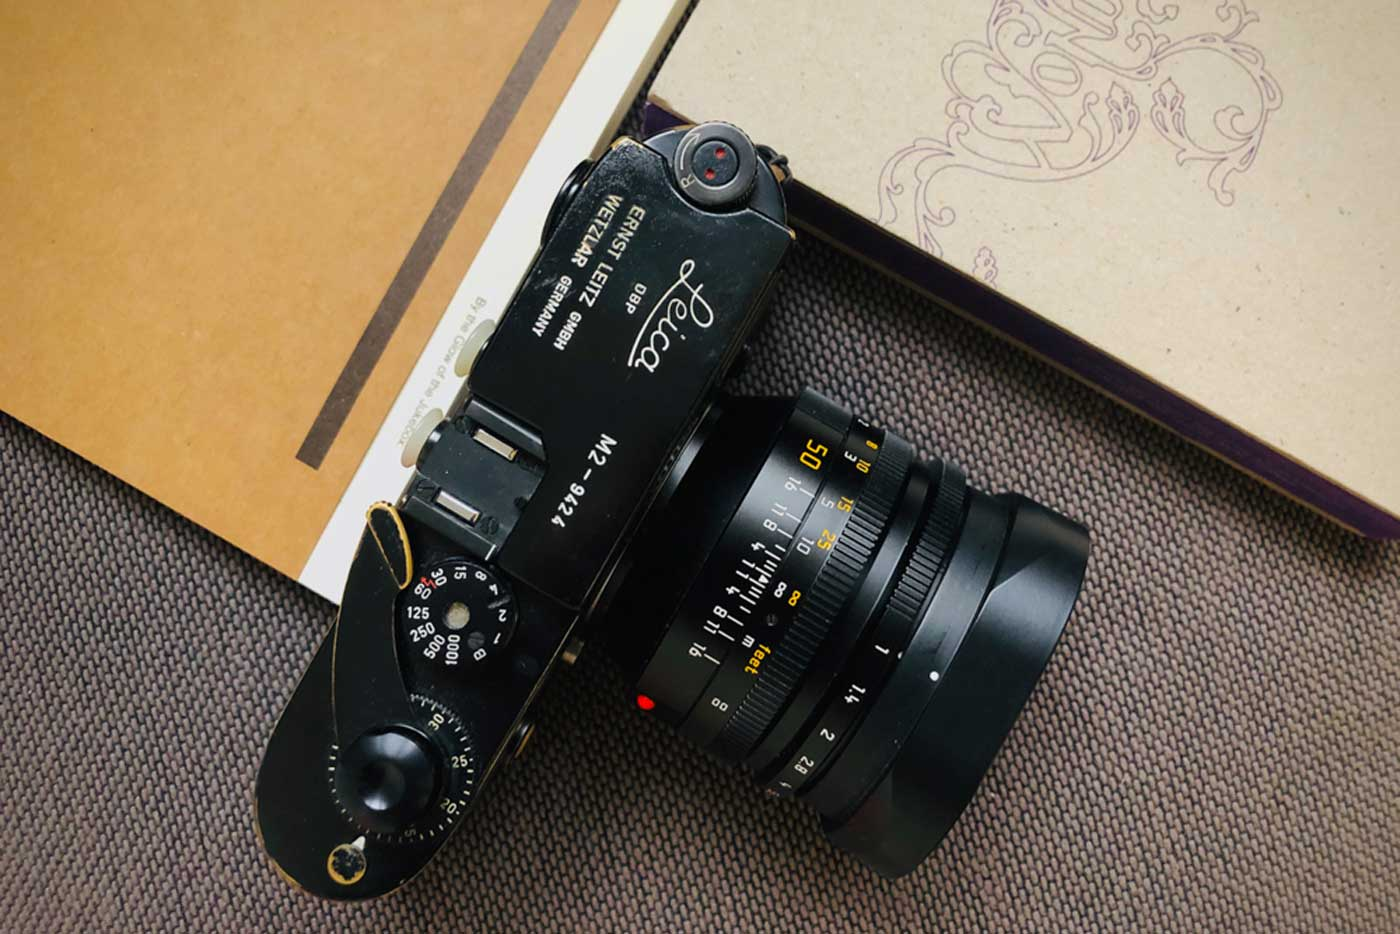 Noctilux-review-blog-tahusa-50mm-f1-v4-version4-E60-Leica-camera-rangefinder-black-paint-mood-creamy-bokeh-cover-photo-ultra-fast-lenses-dof-big-aperture